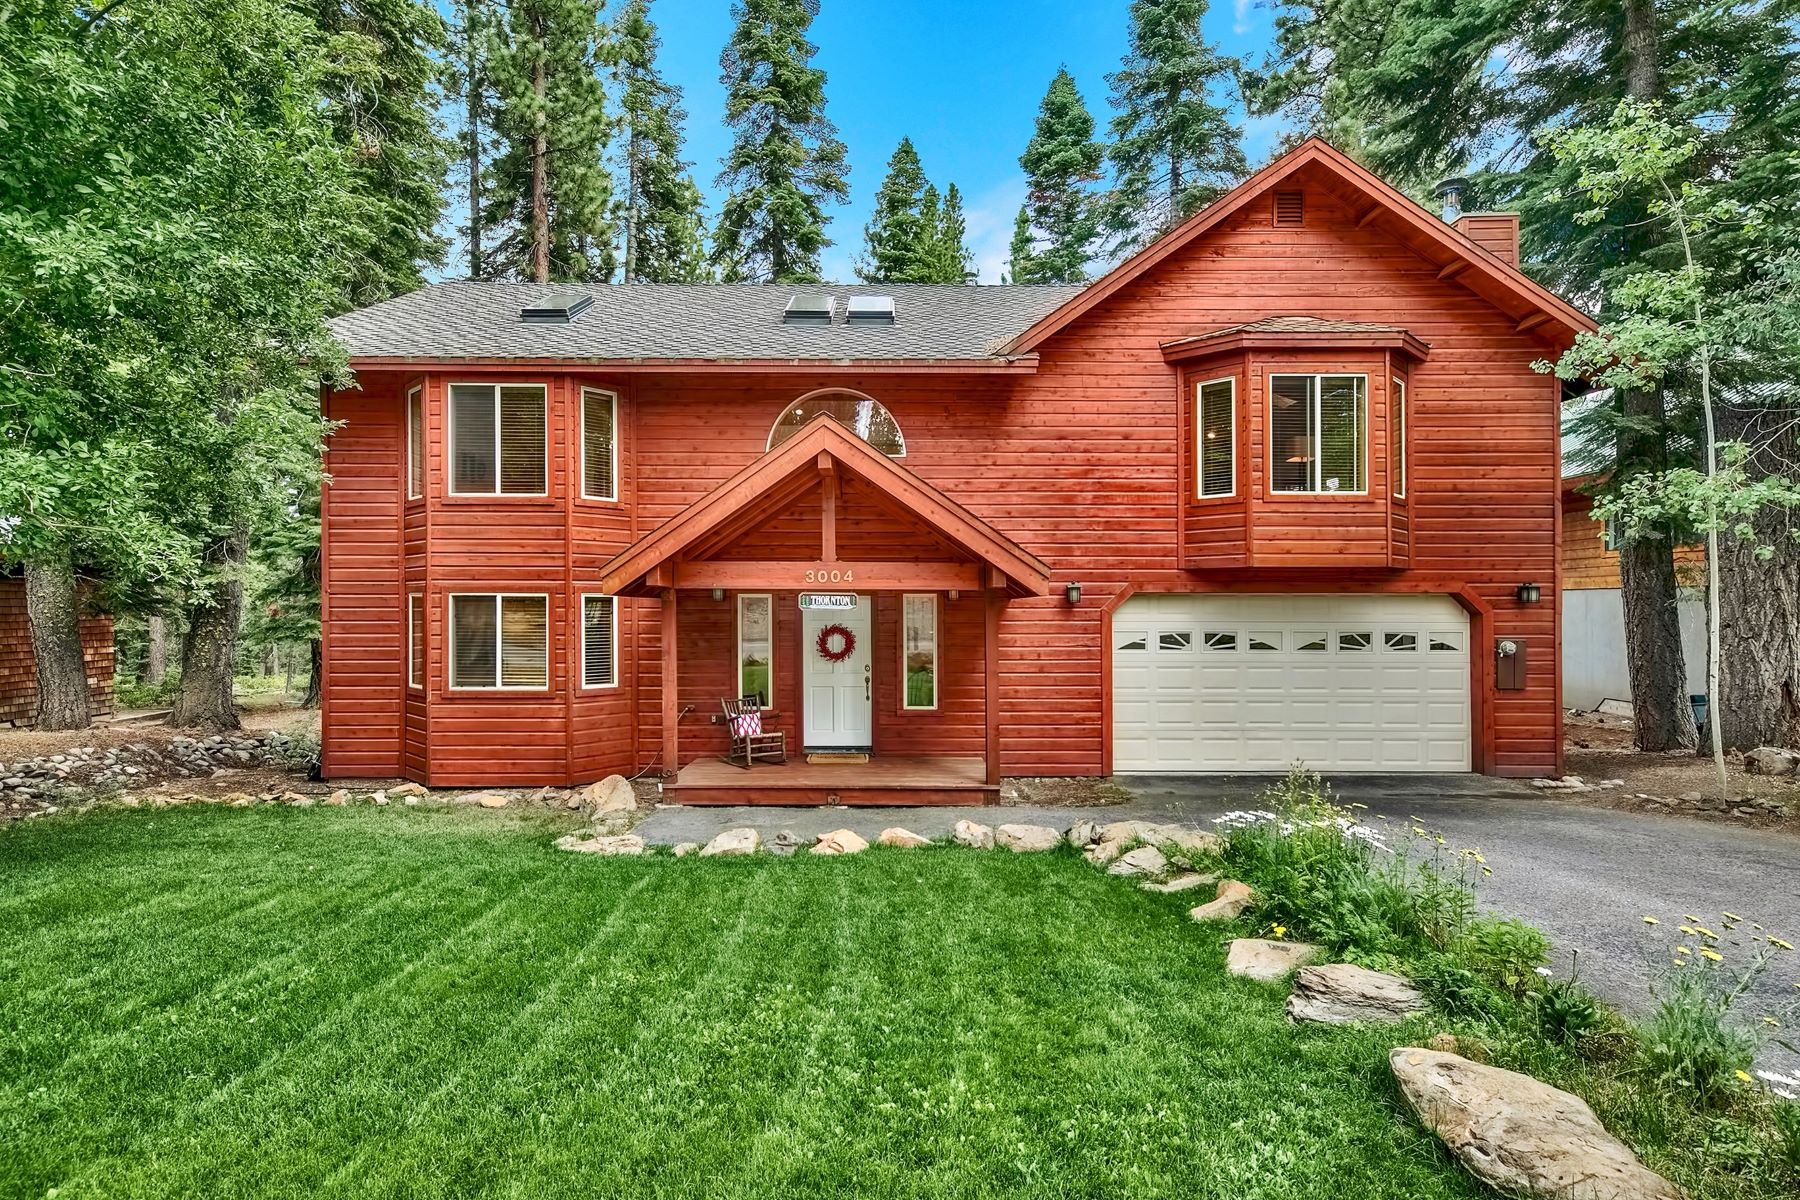 Single Family Homes for Active at 3004 Polaris Road, Tahoe City, CA 96145 3004 Polaris Road Tahoe City, California 96145 United States